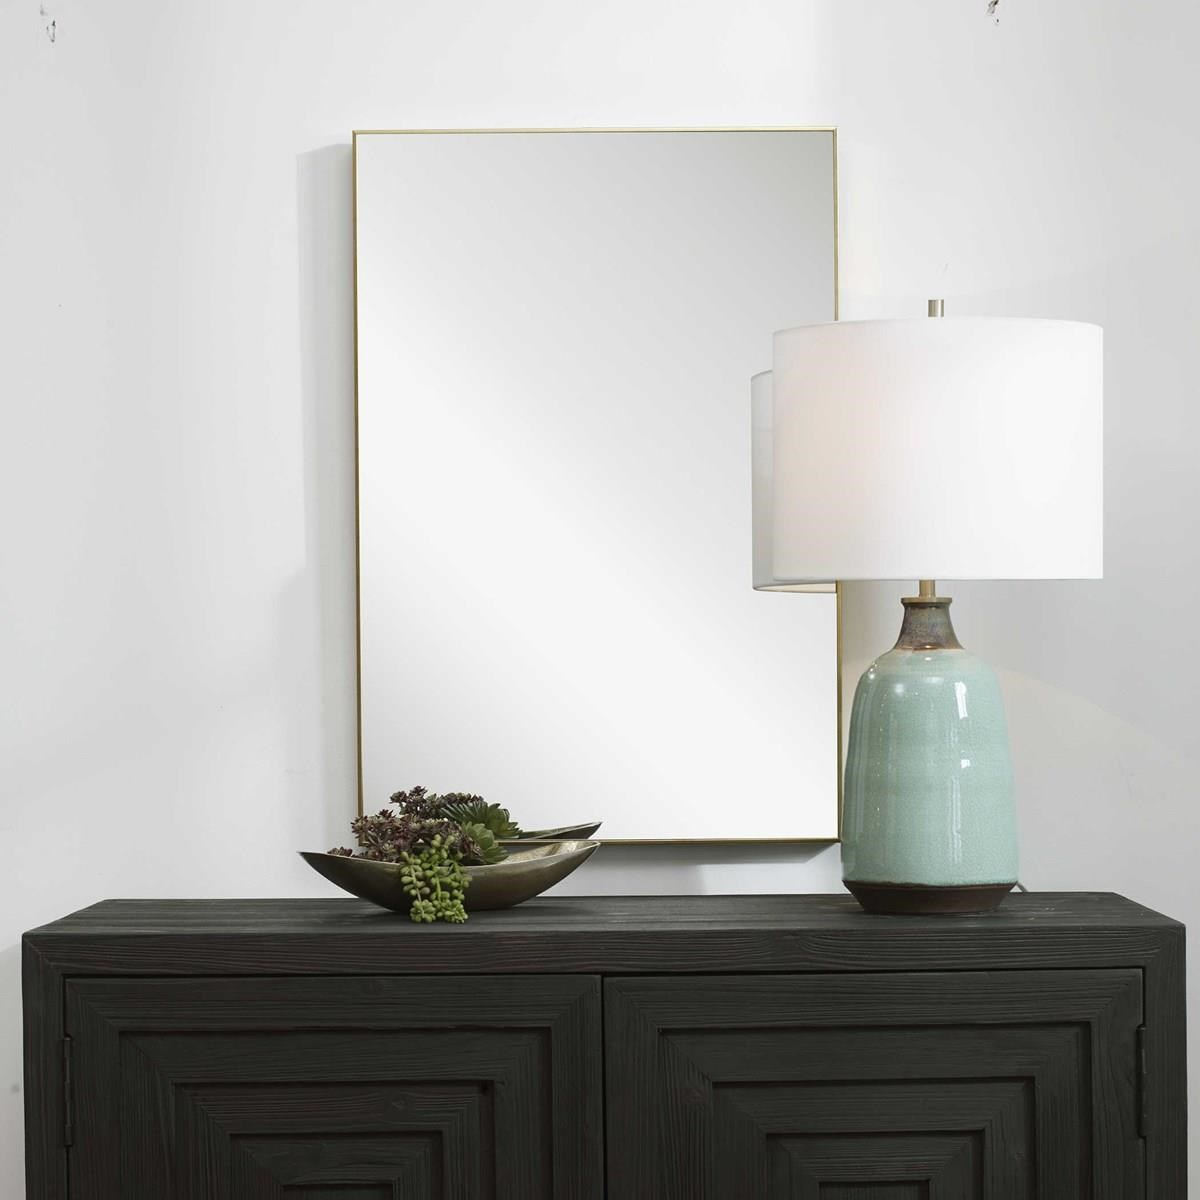 Mirrors DELILAH WALL MIRROR by Unique at Walker's Furniture